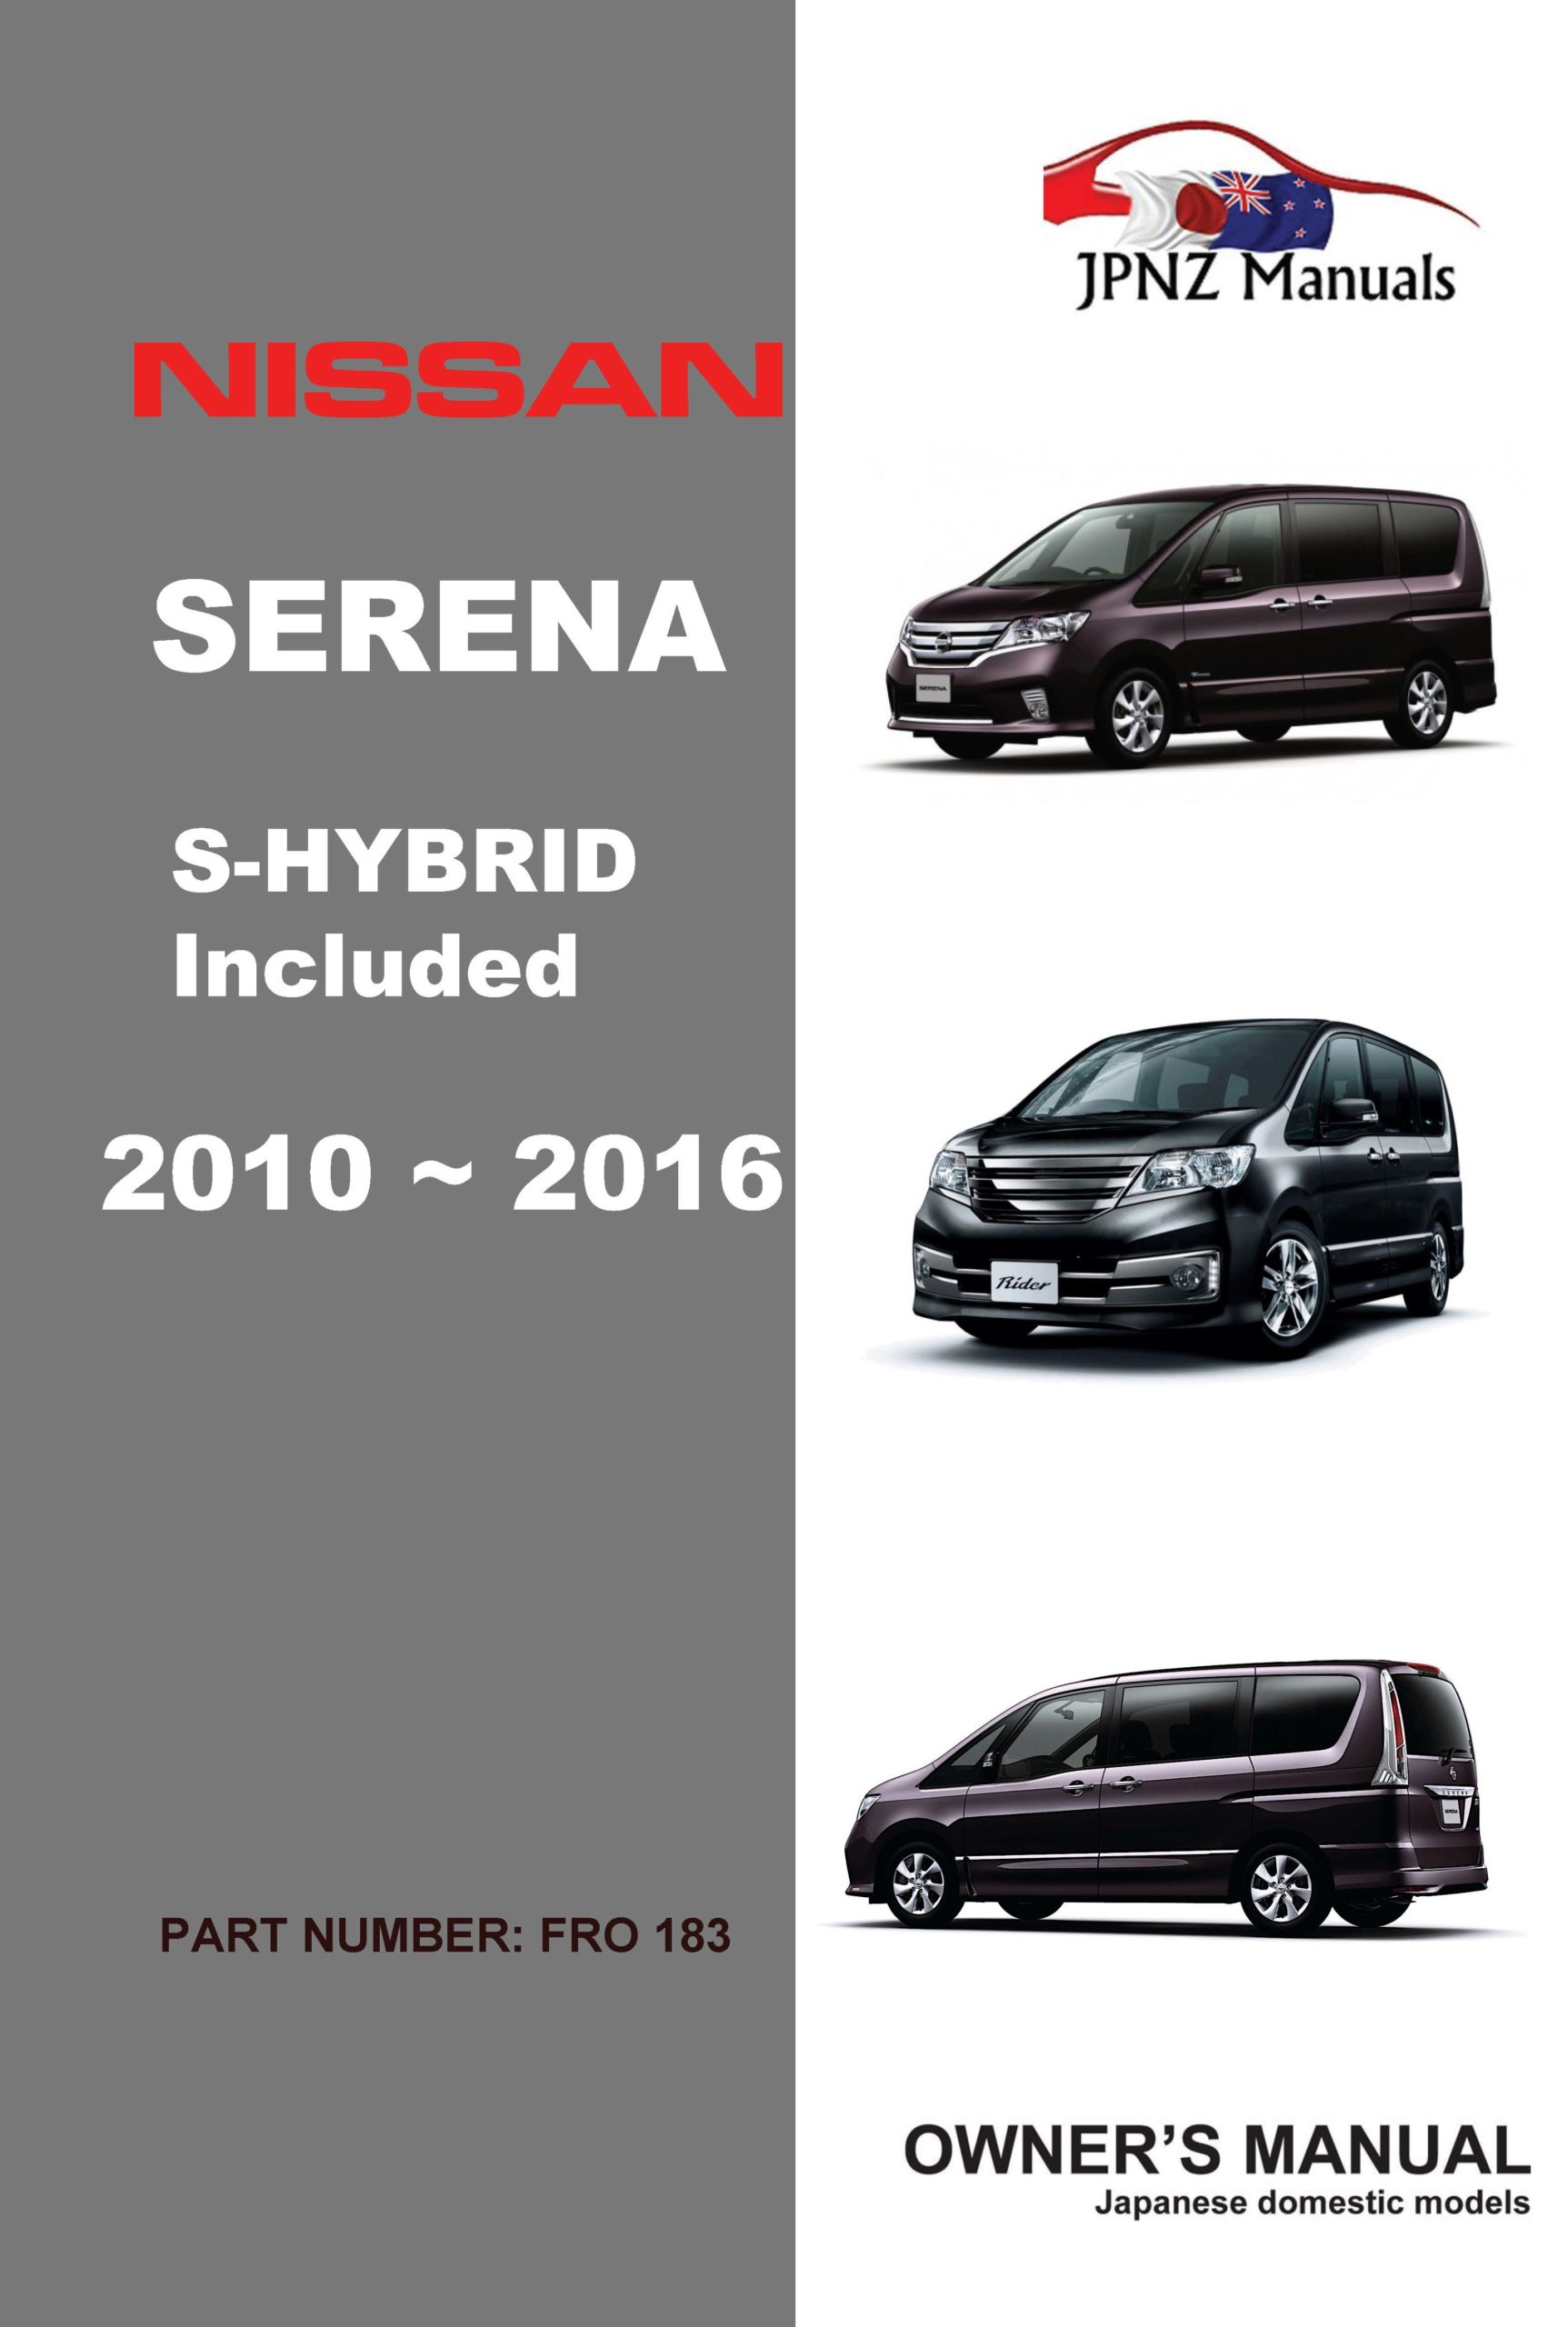 Nissan - Serena car owners user manual in English | 2010 - 2016